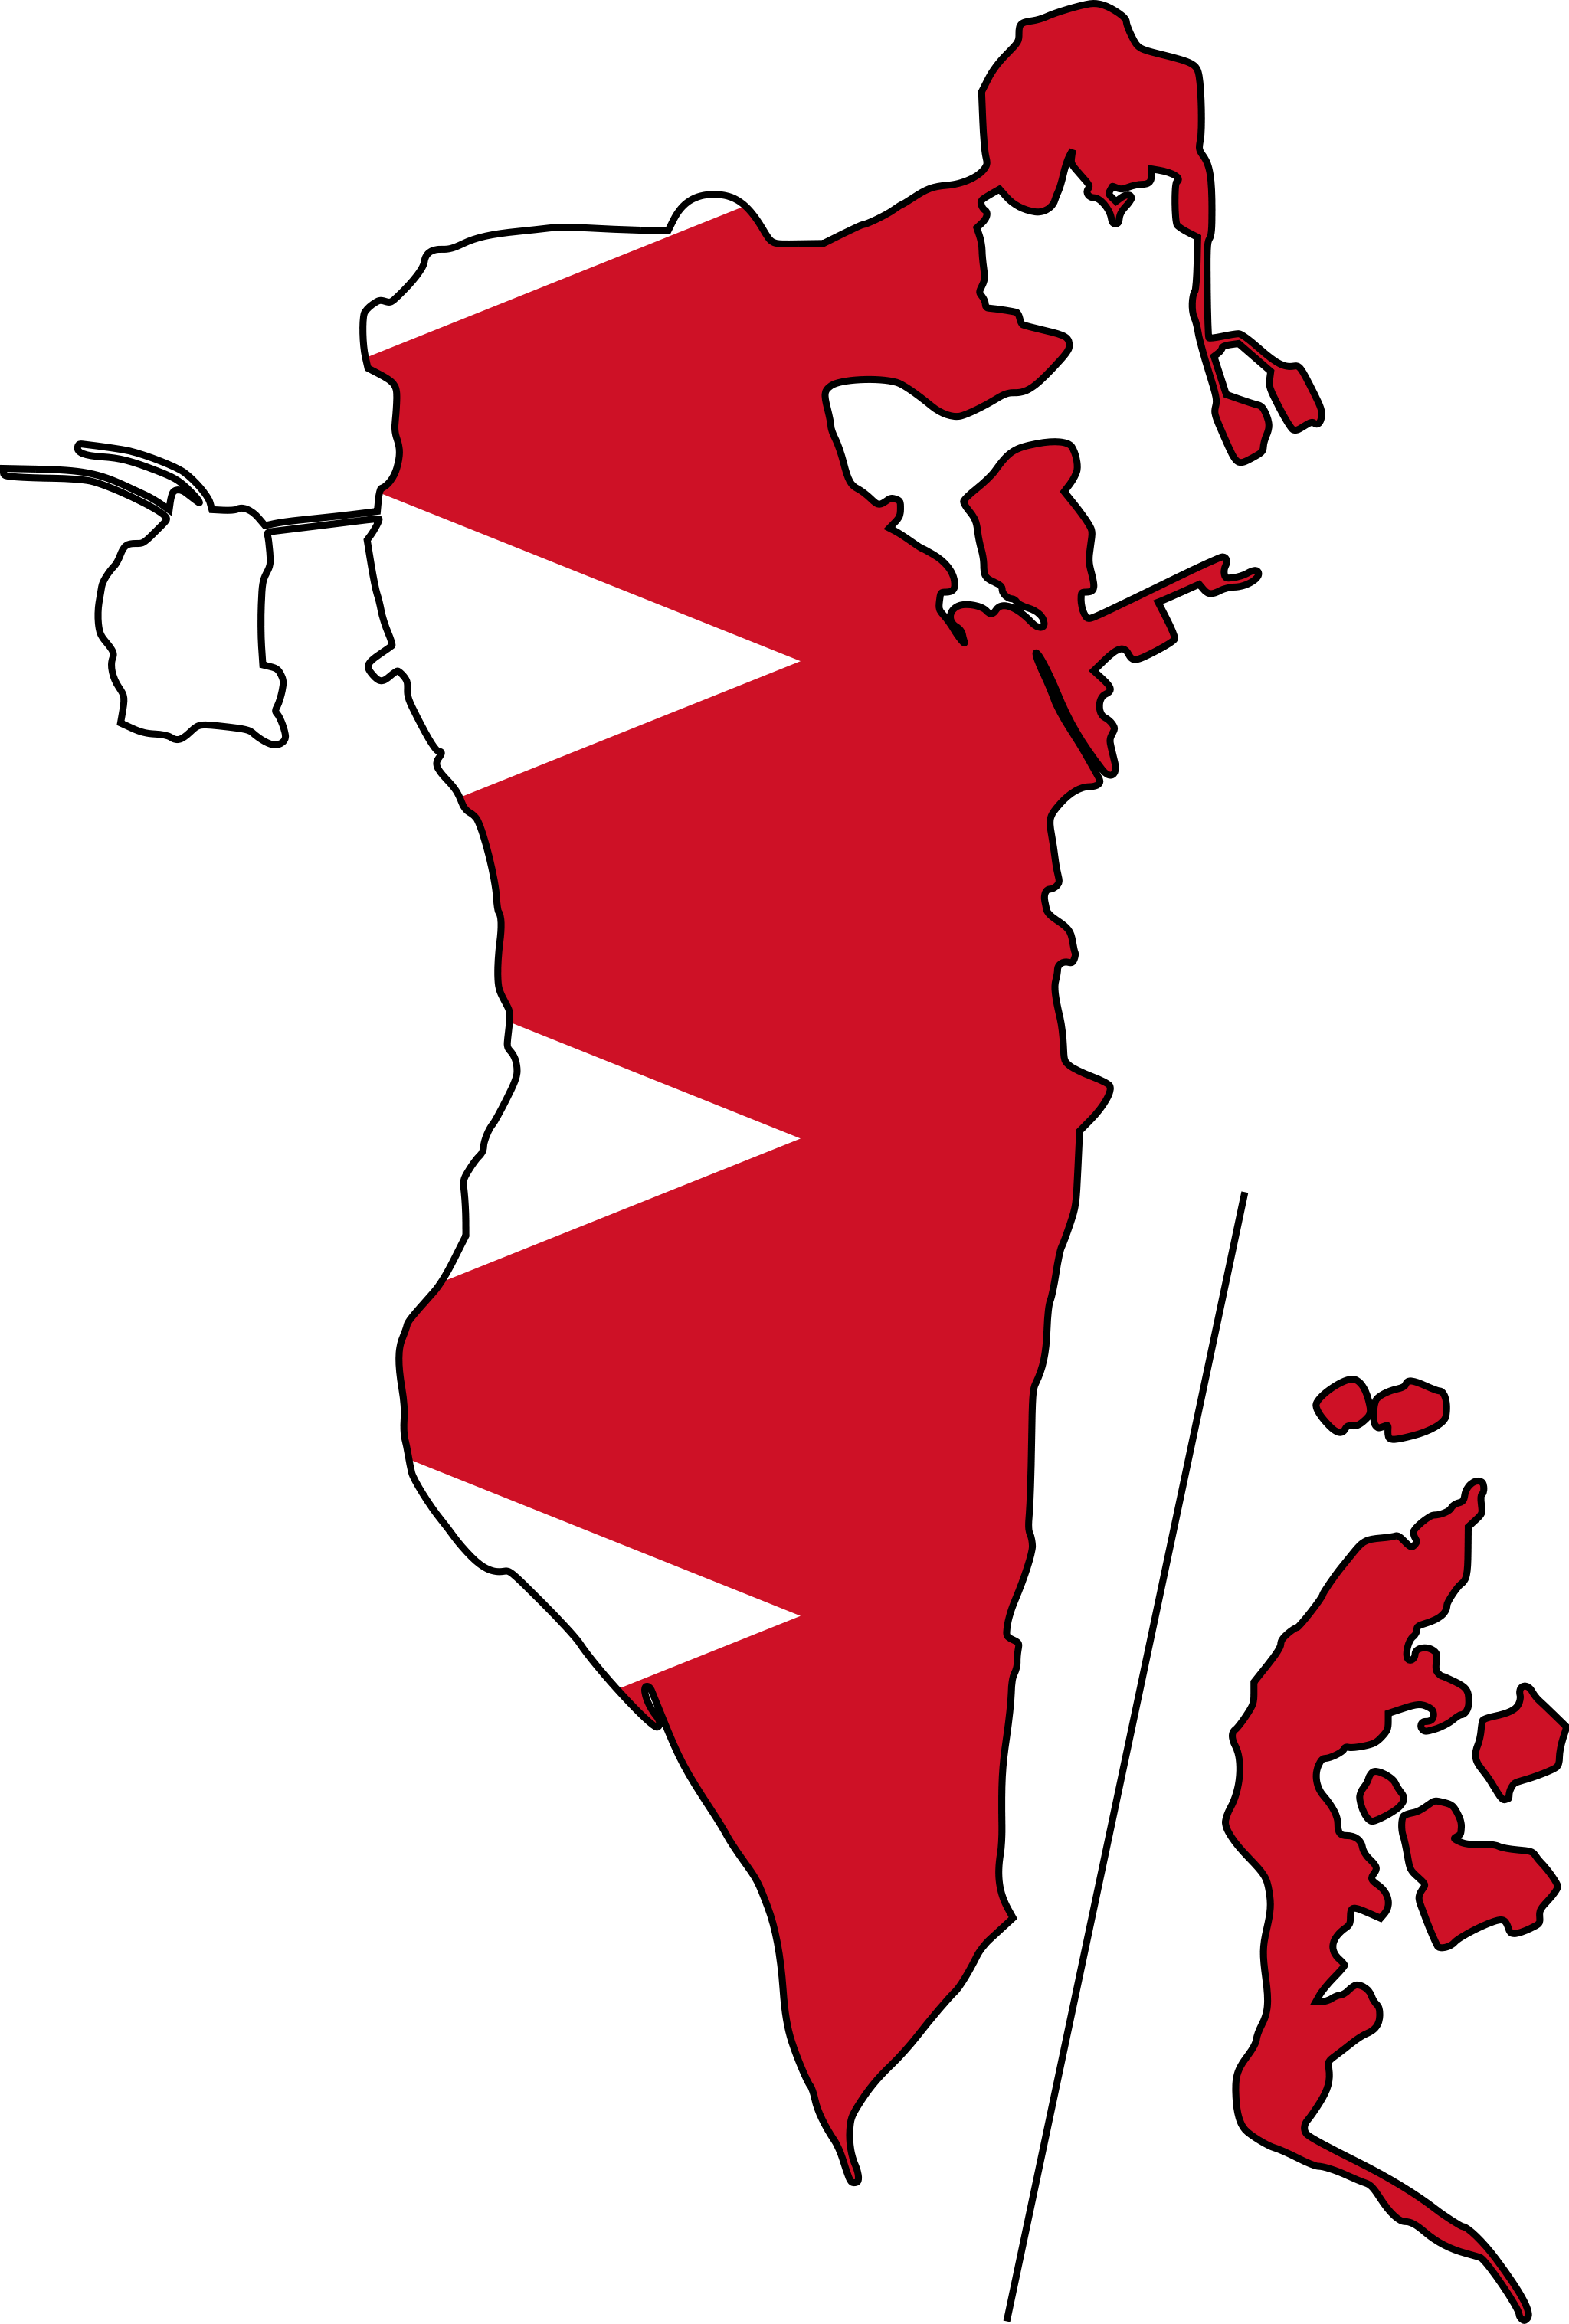 Bahrain Map With Flag